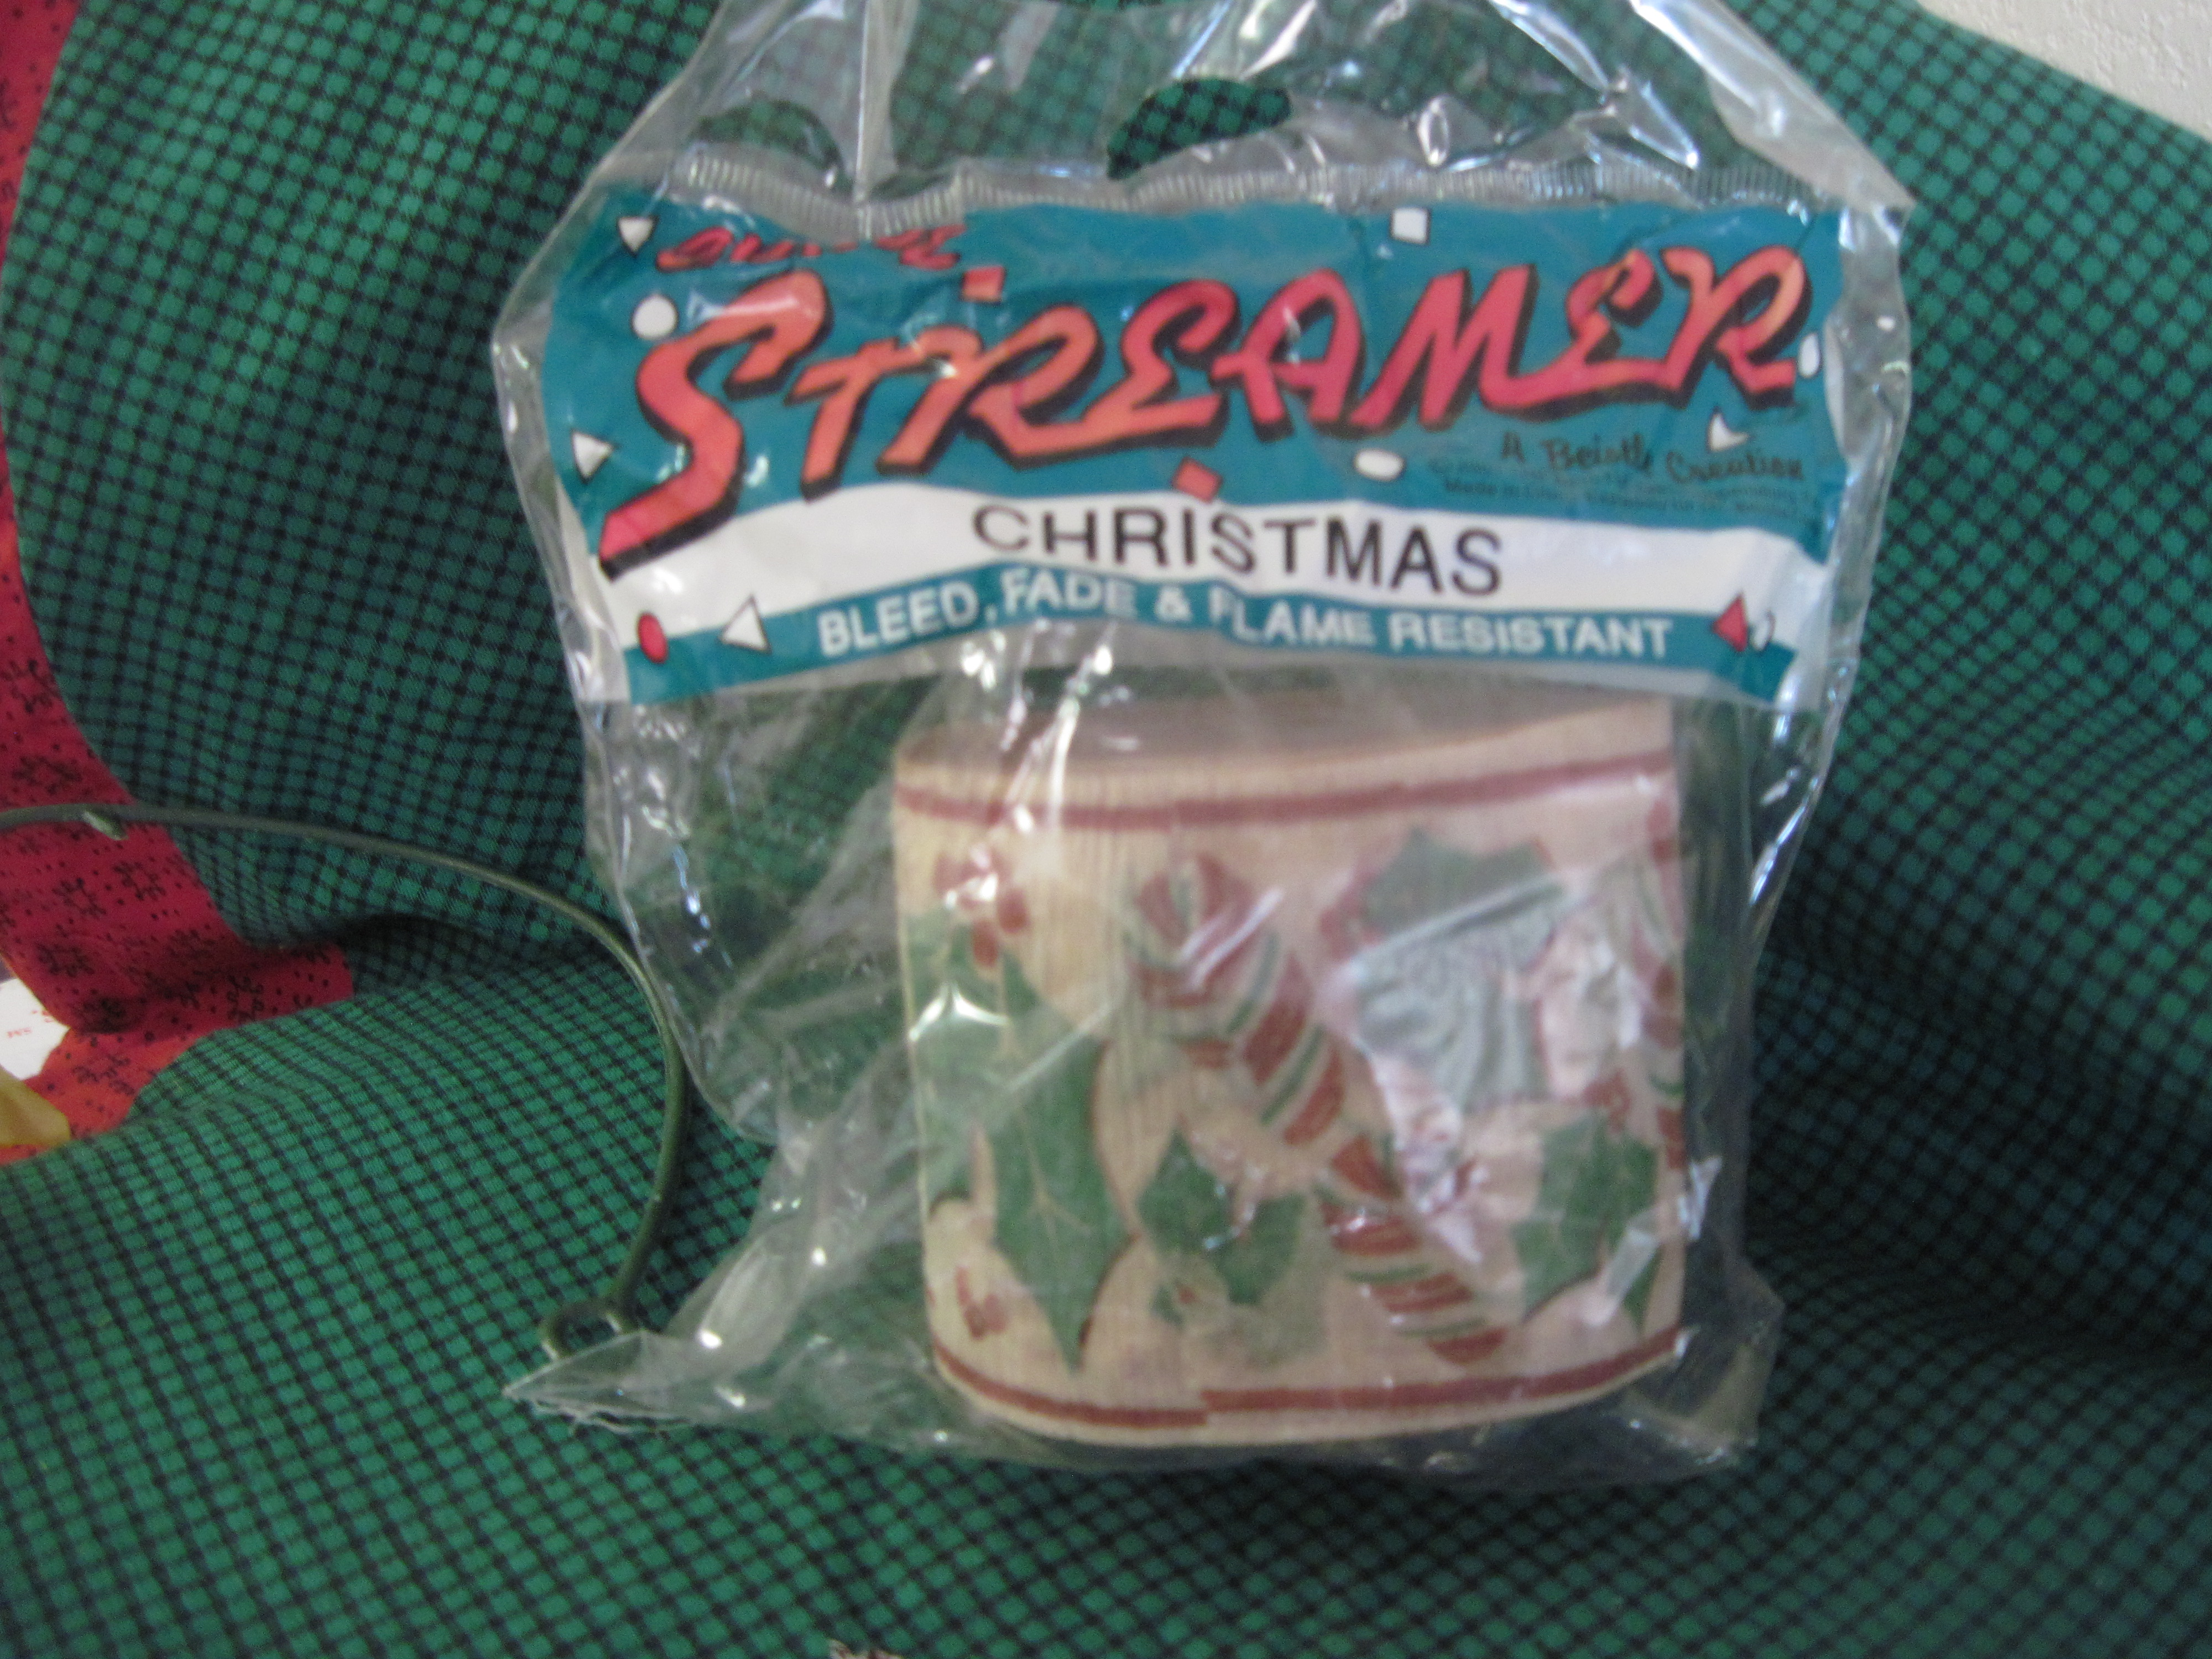 Christmas Streamer - Candy Canes & Holly